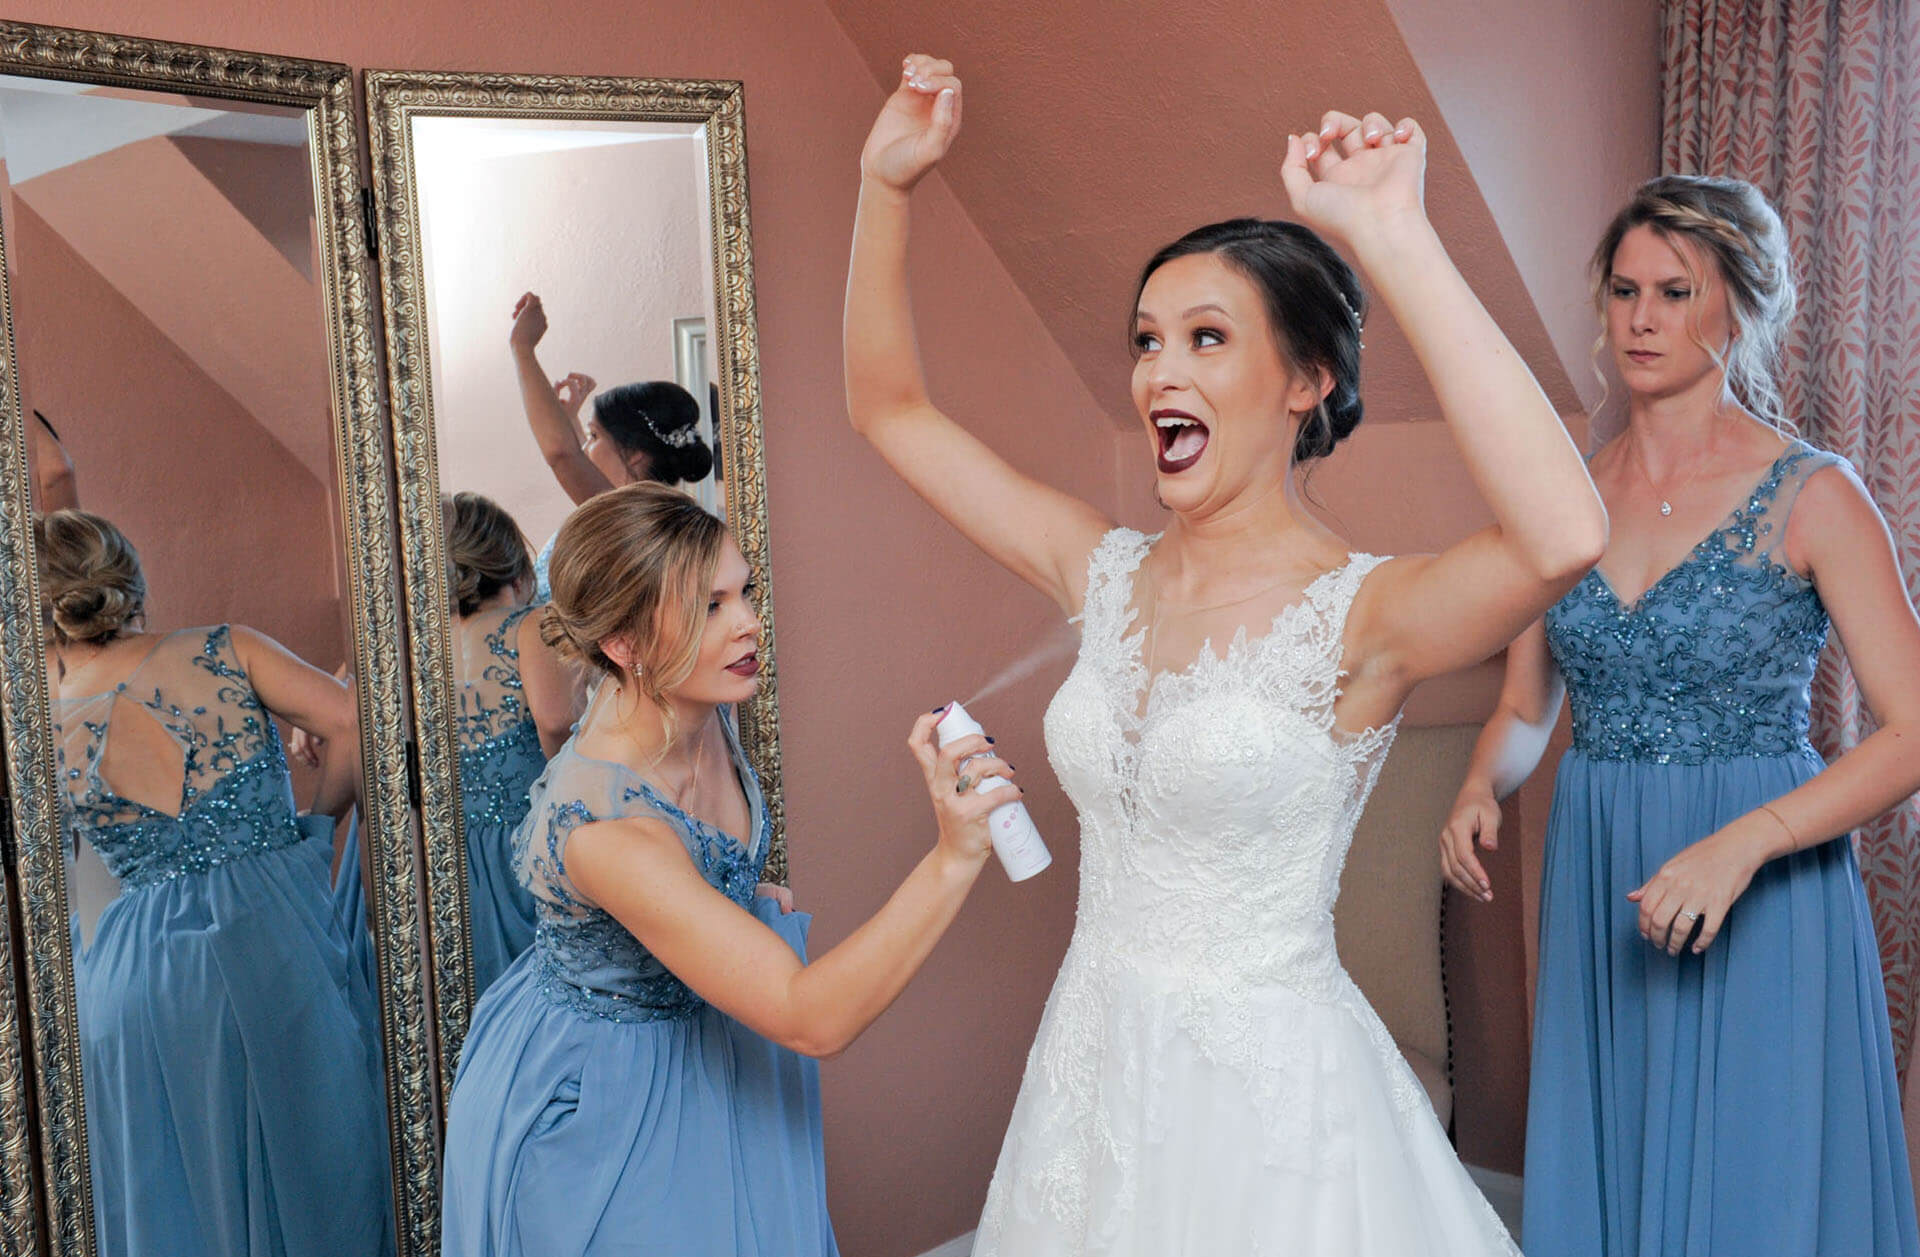 Photojournalist wedding moments at their best in Detroit, Michigan as a bride reacts to getting sprayed with chilly deodorant before her wedding.